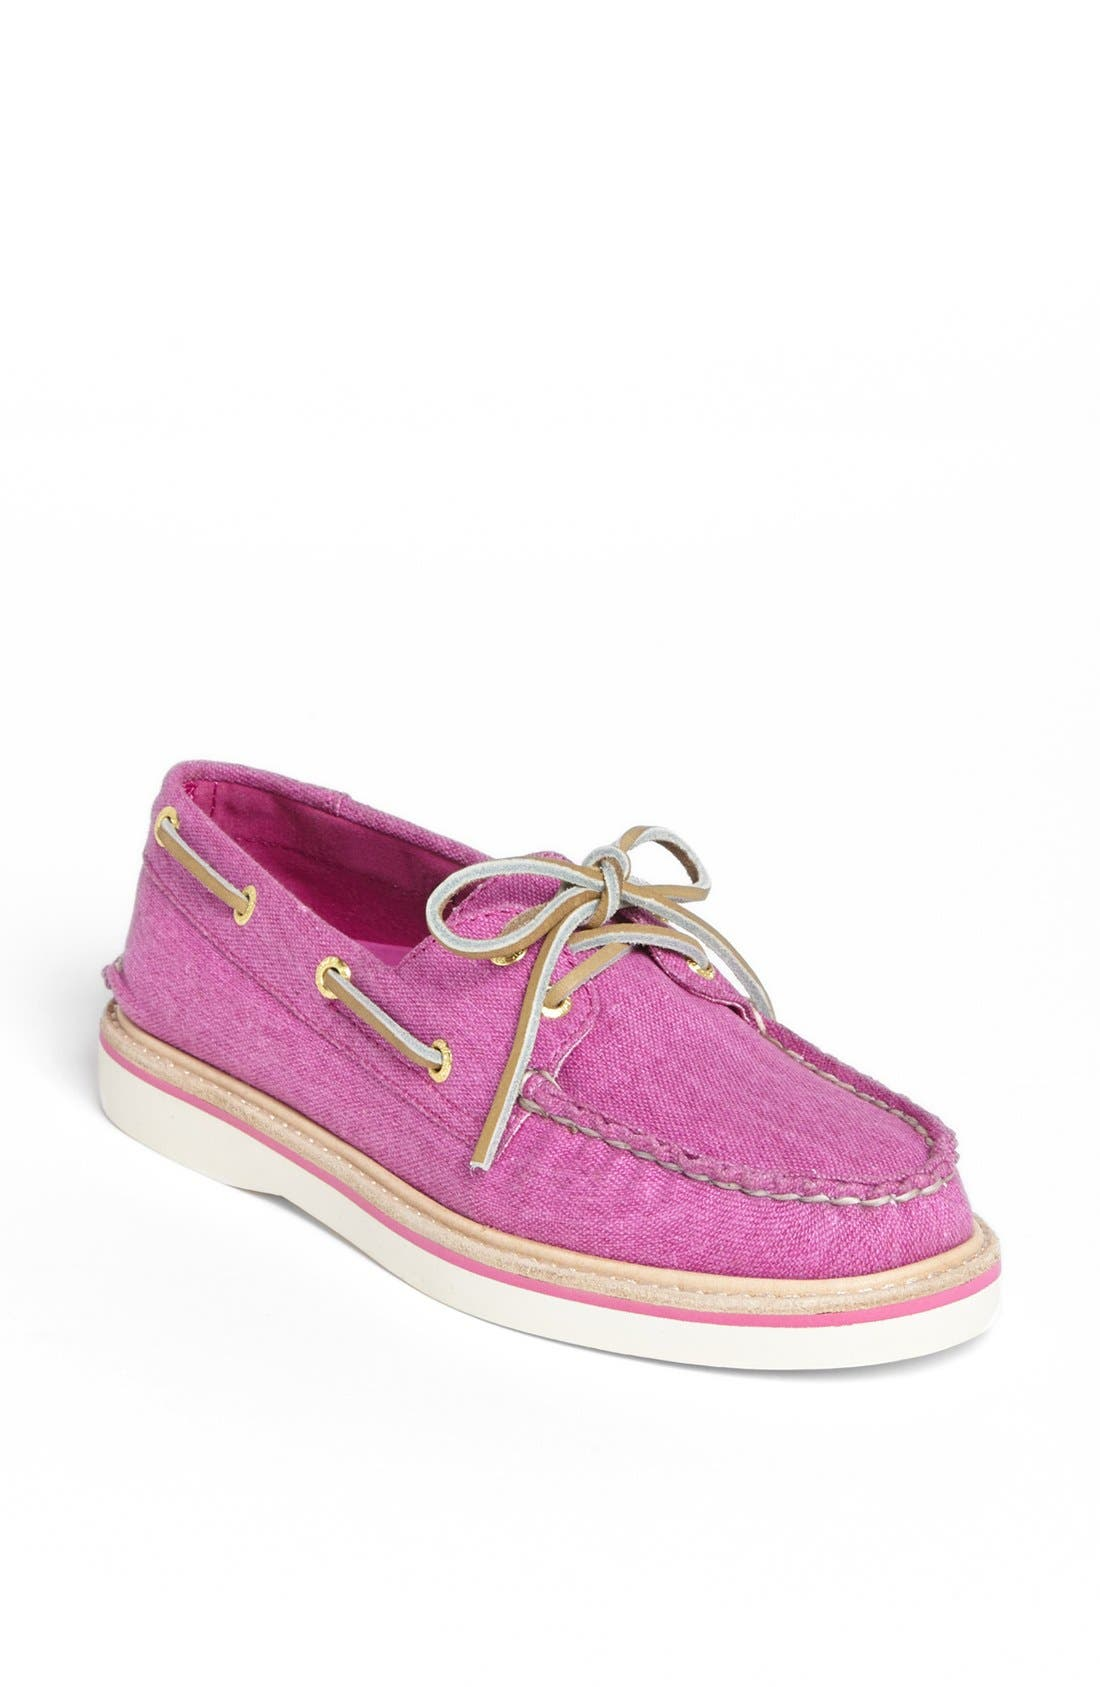 Main Image - Sperry Top-Sider® 'Grayson' Canvas Boat Shoe